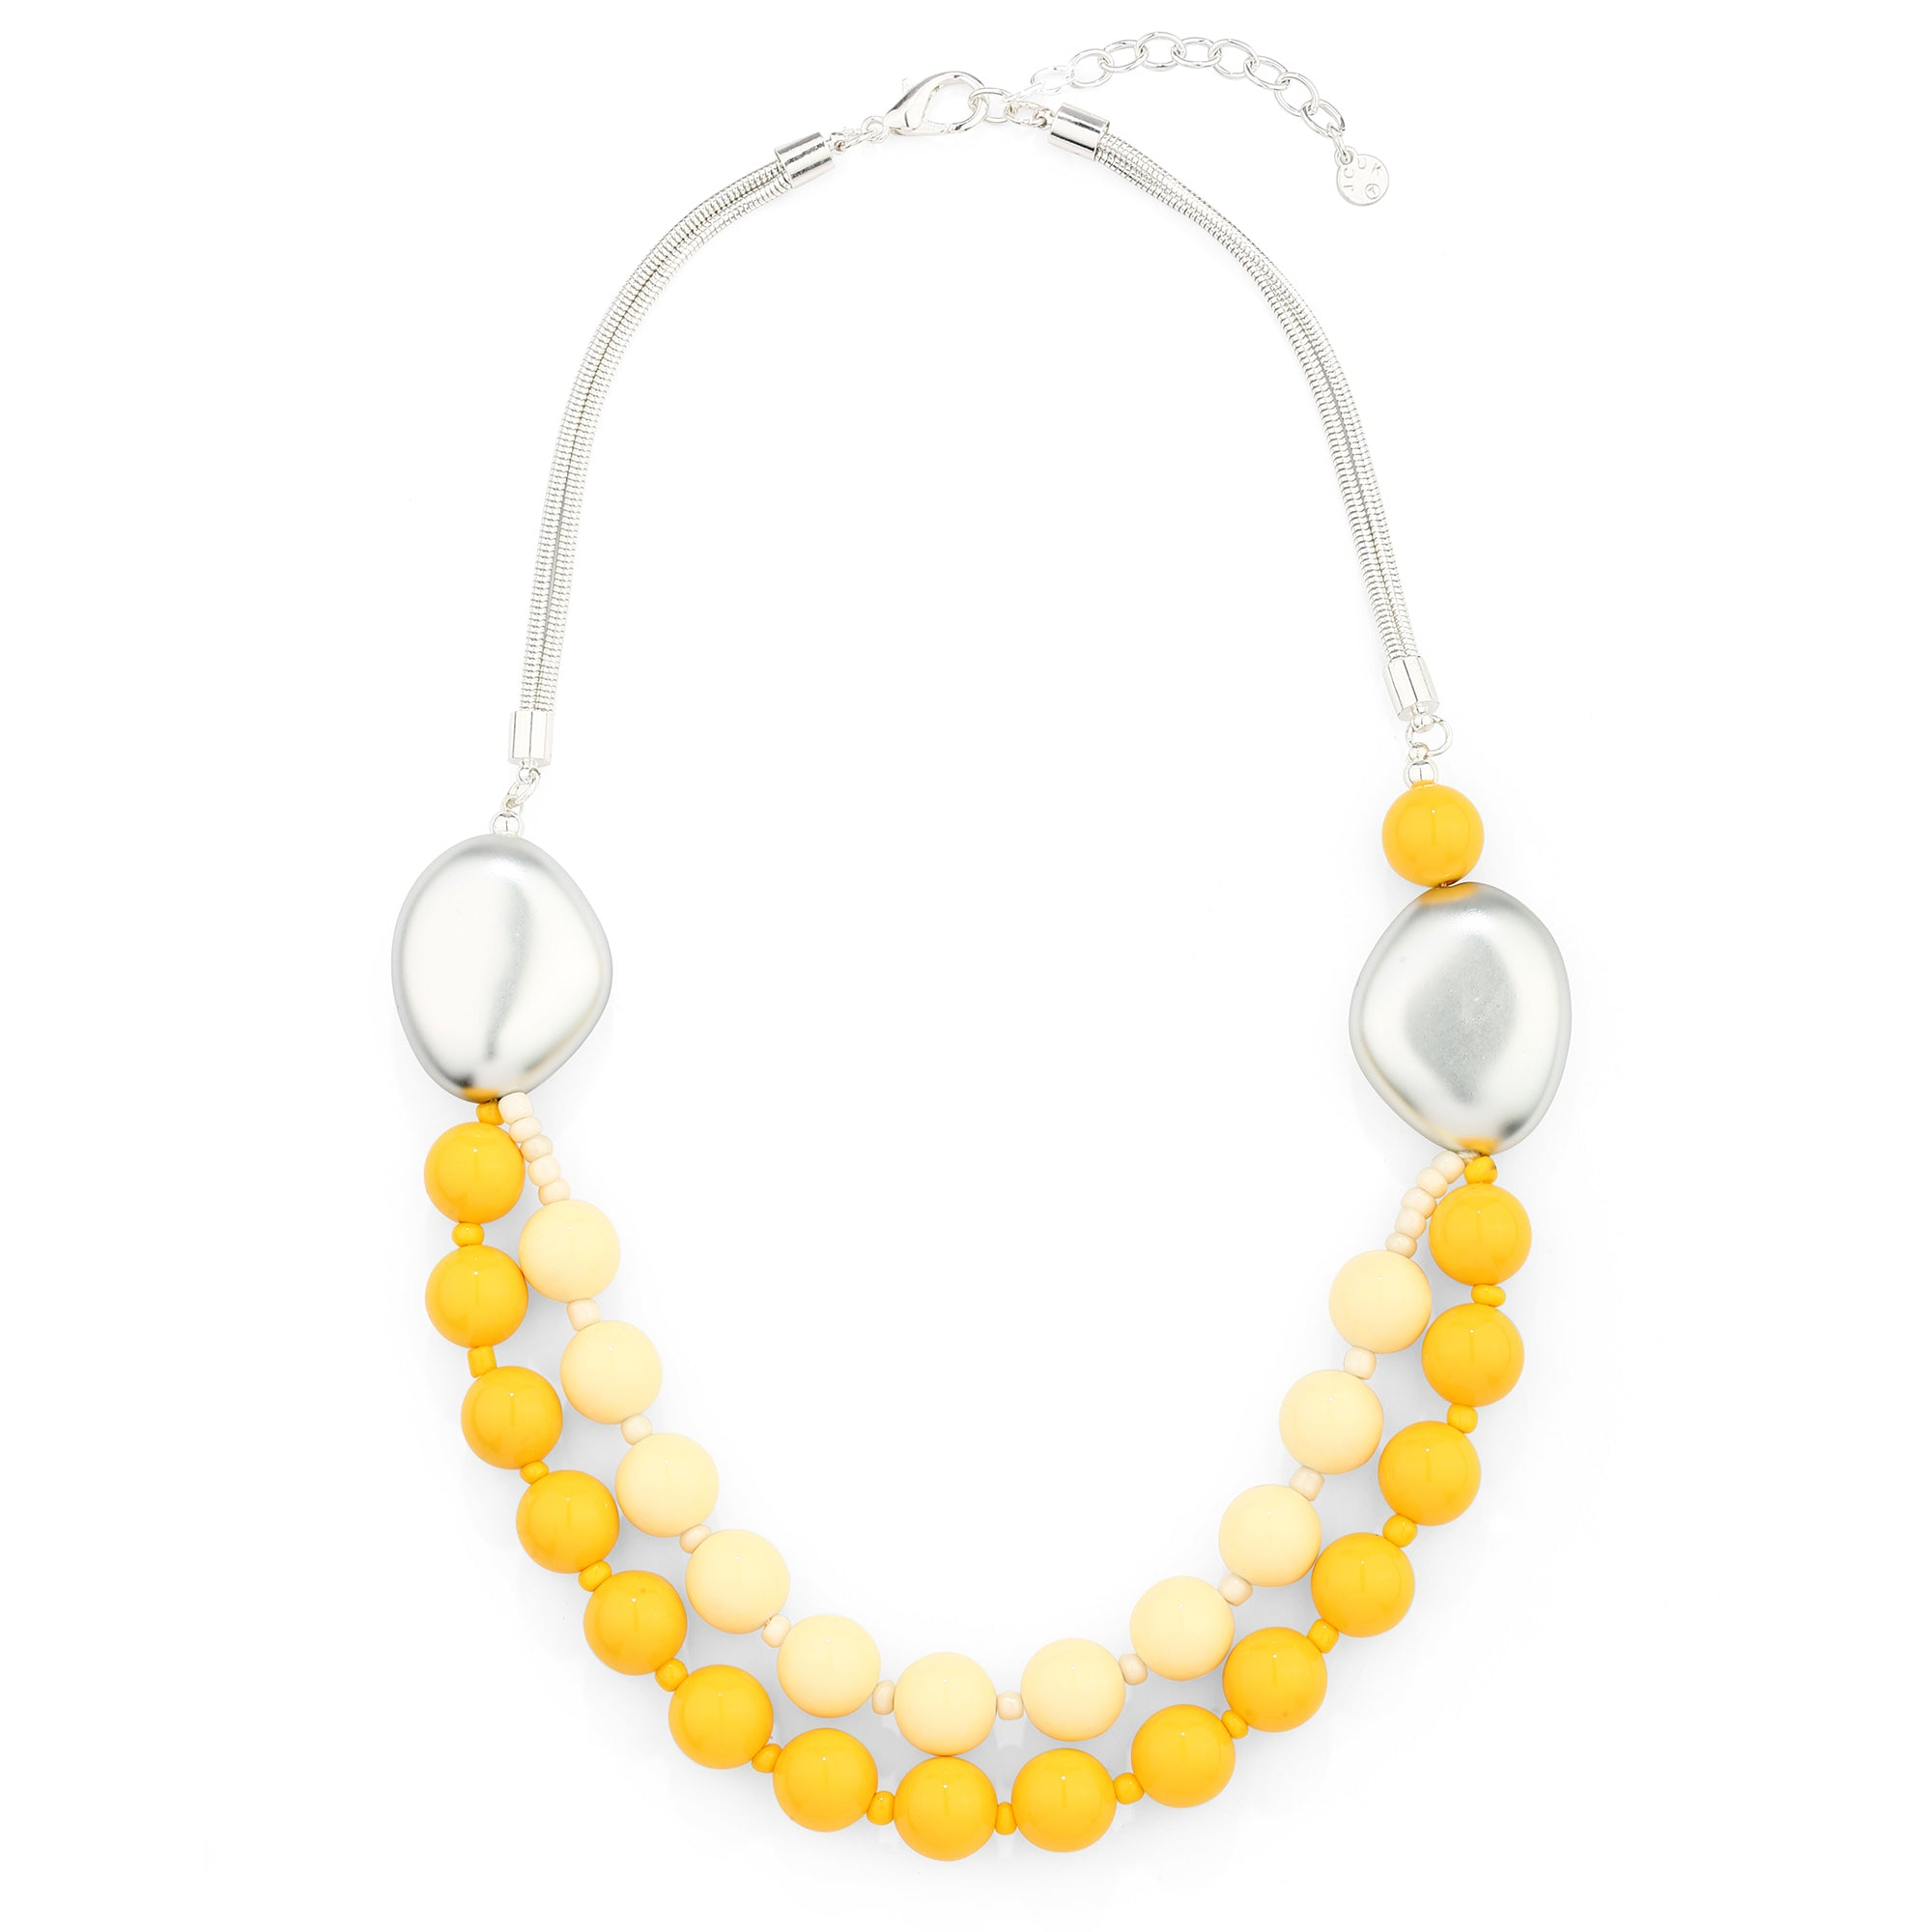 Double Silver with Yellow Chain Necklace - JCUK